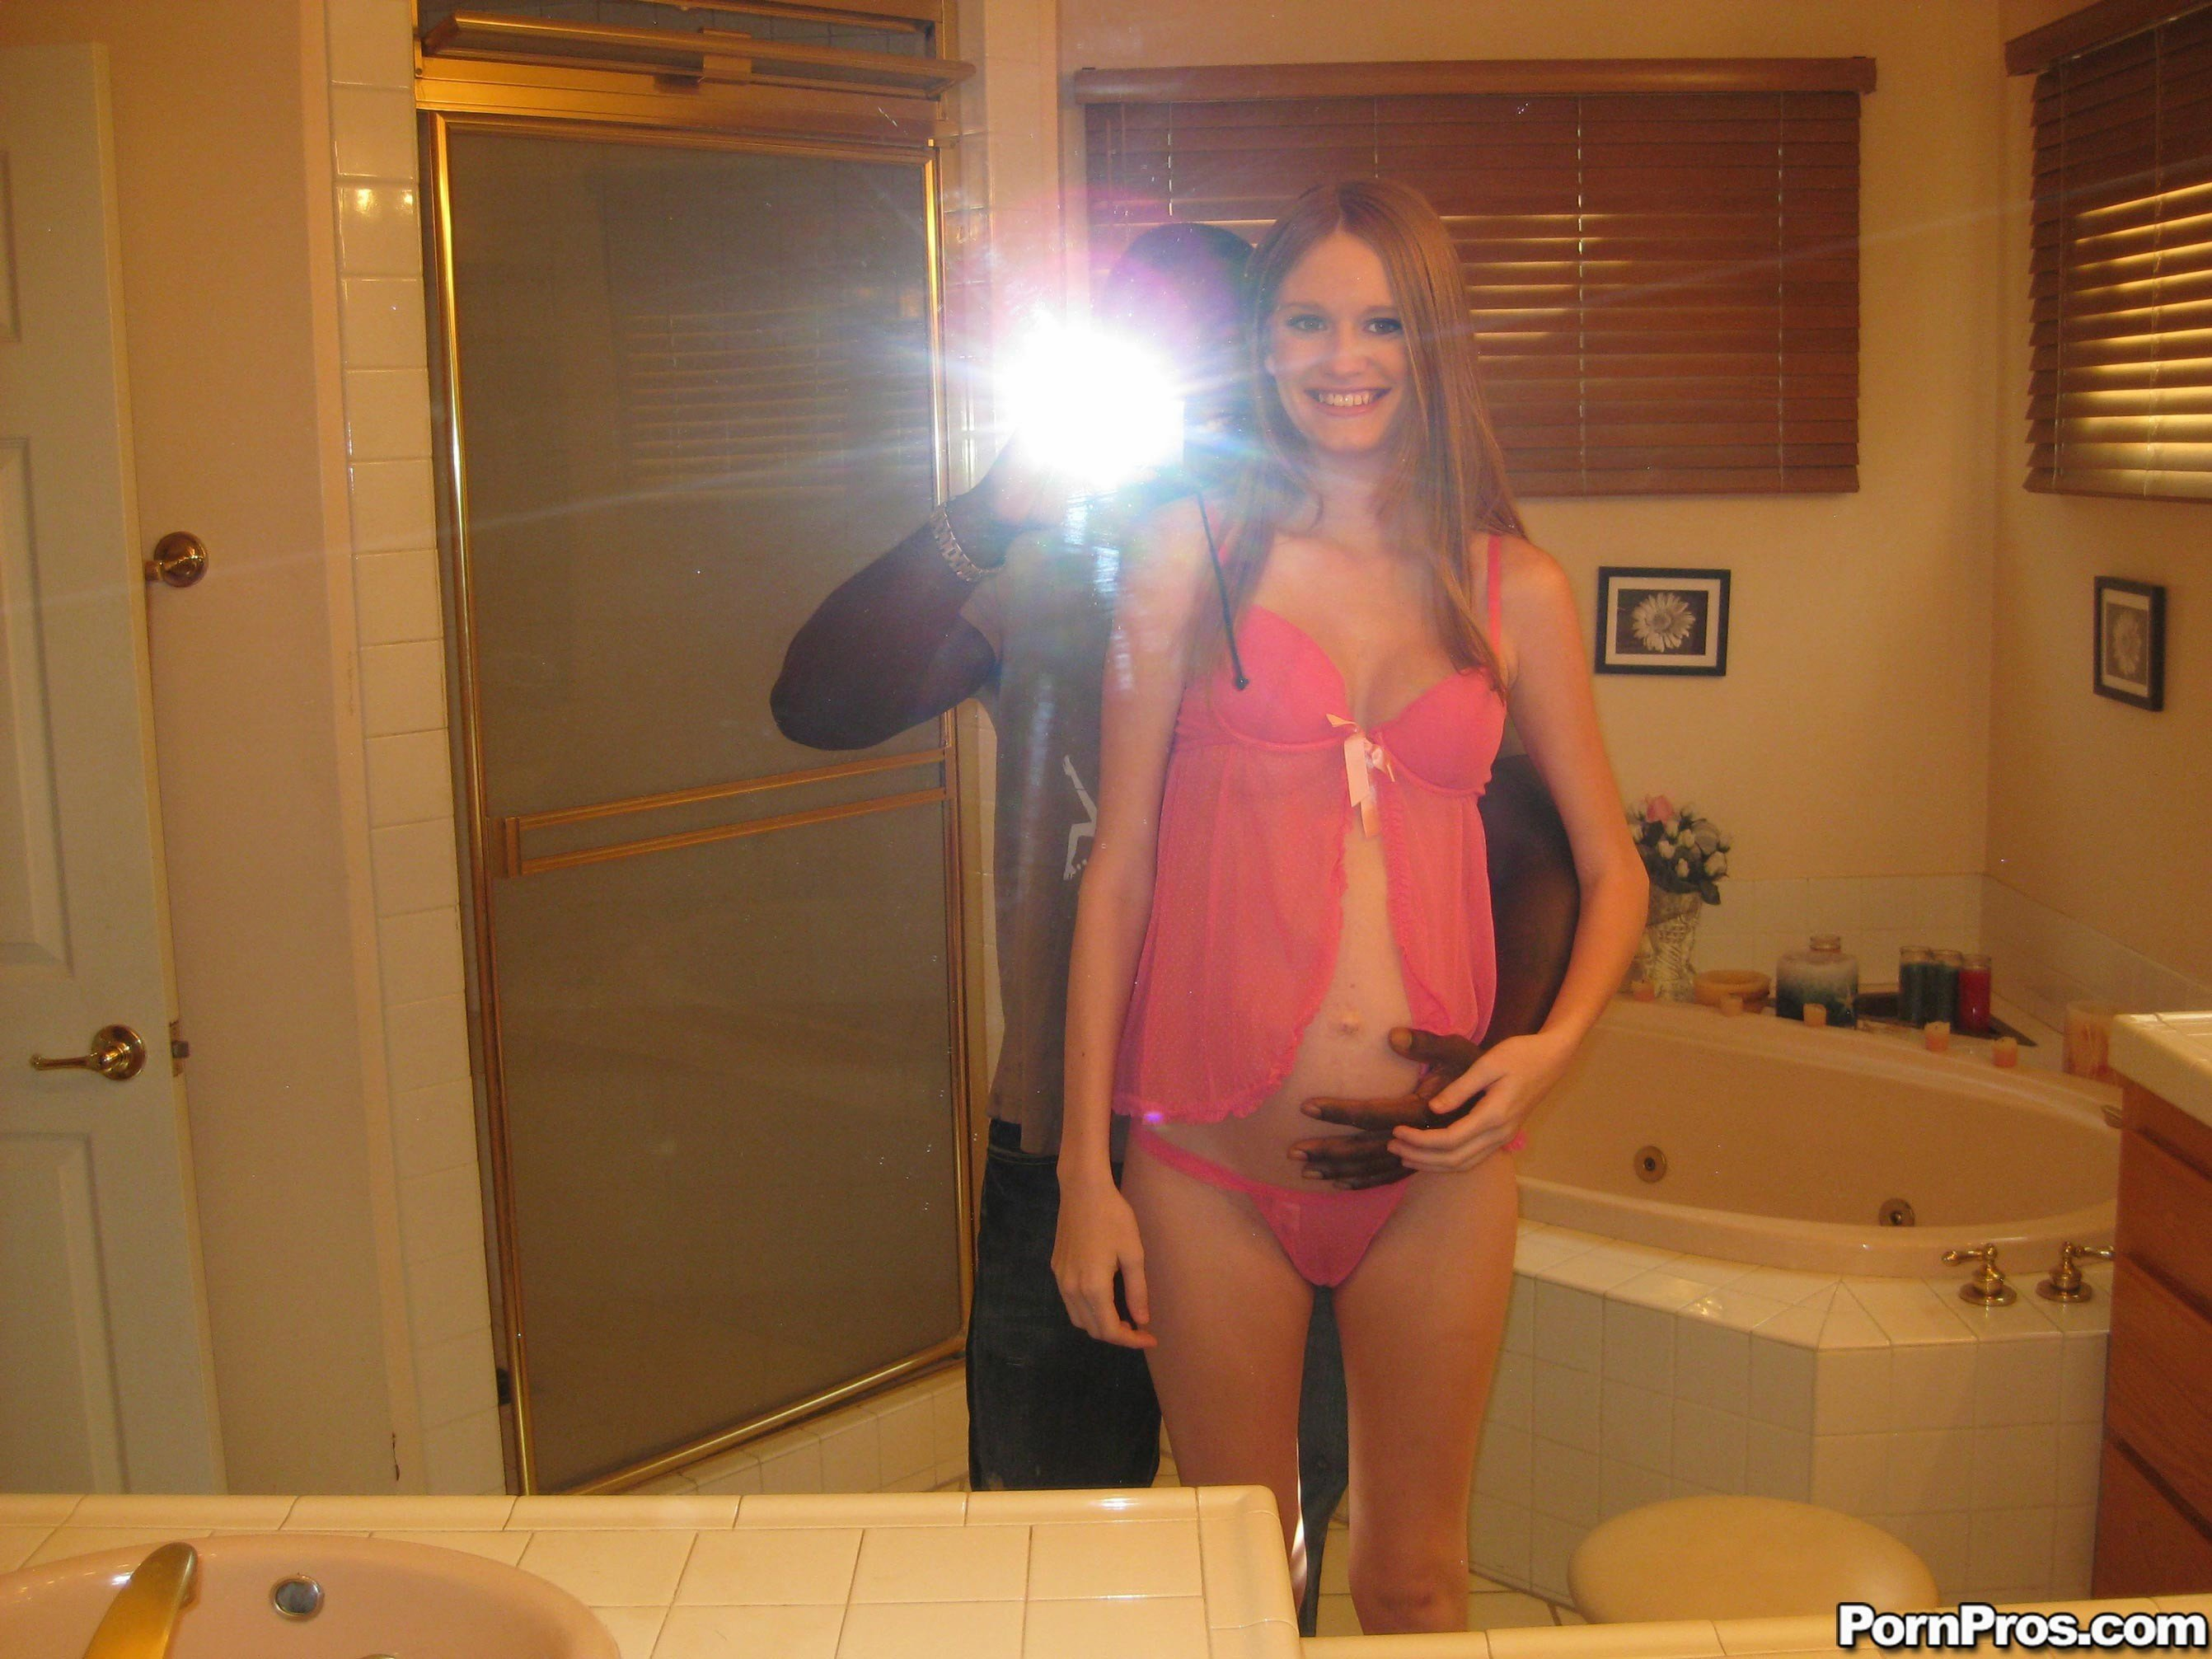 Bathtub Porn Captions - OldNudism.Com Welcome To Old Nudism! We Have Ton Free Mature ...